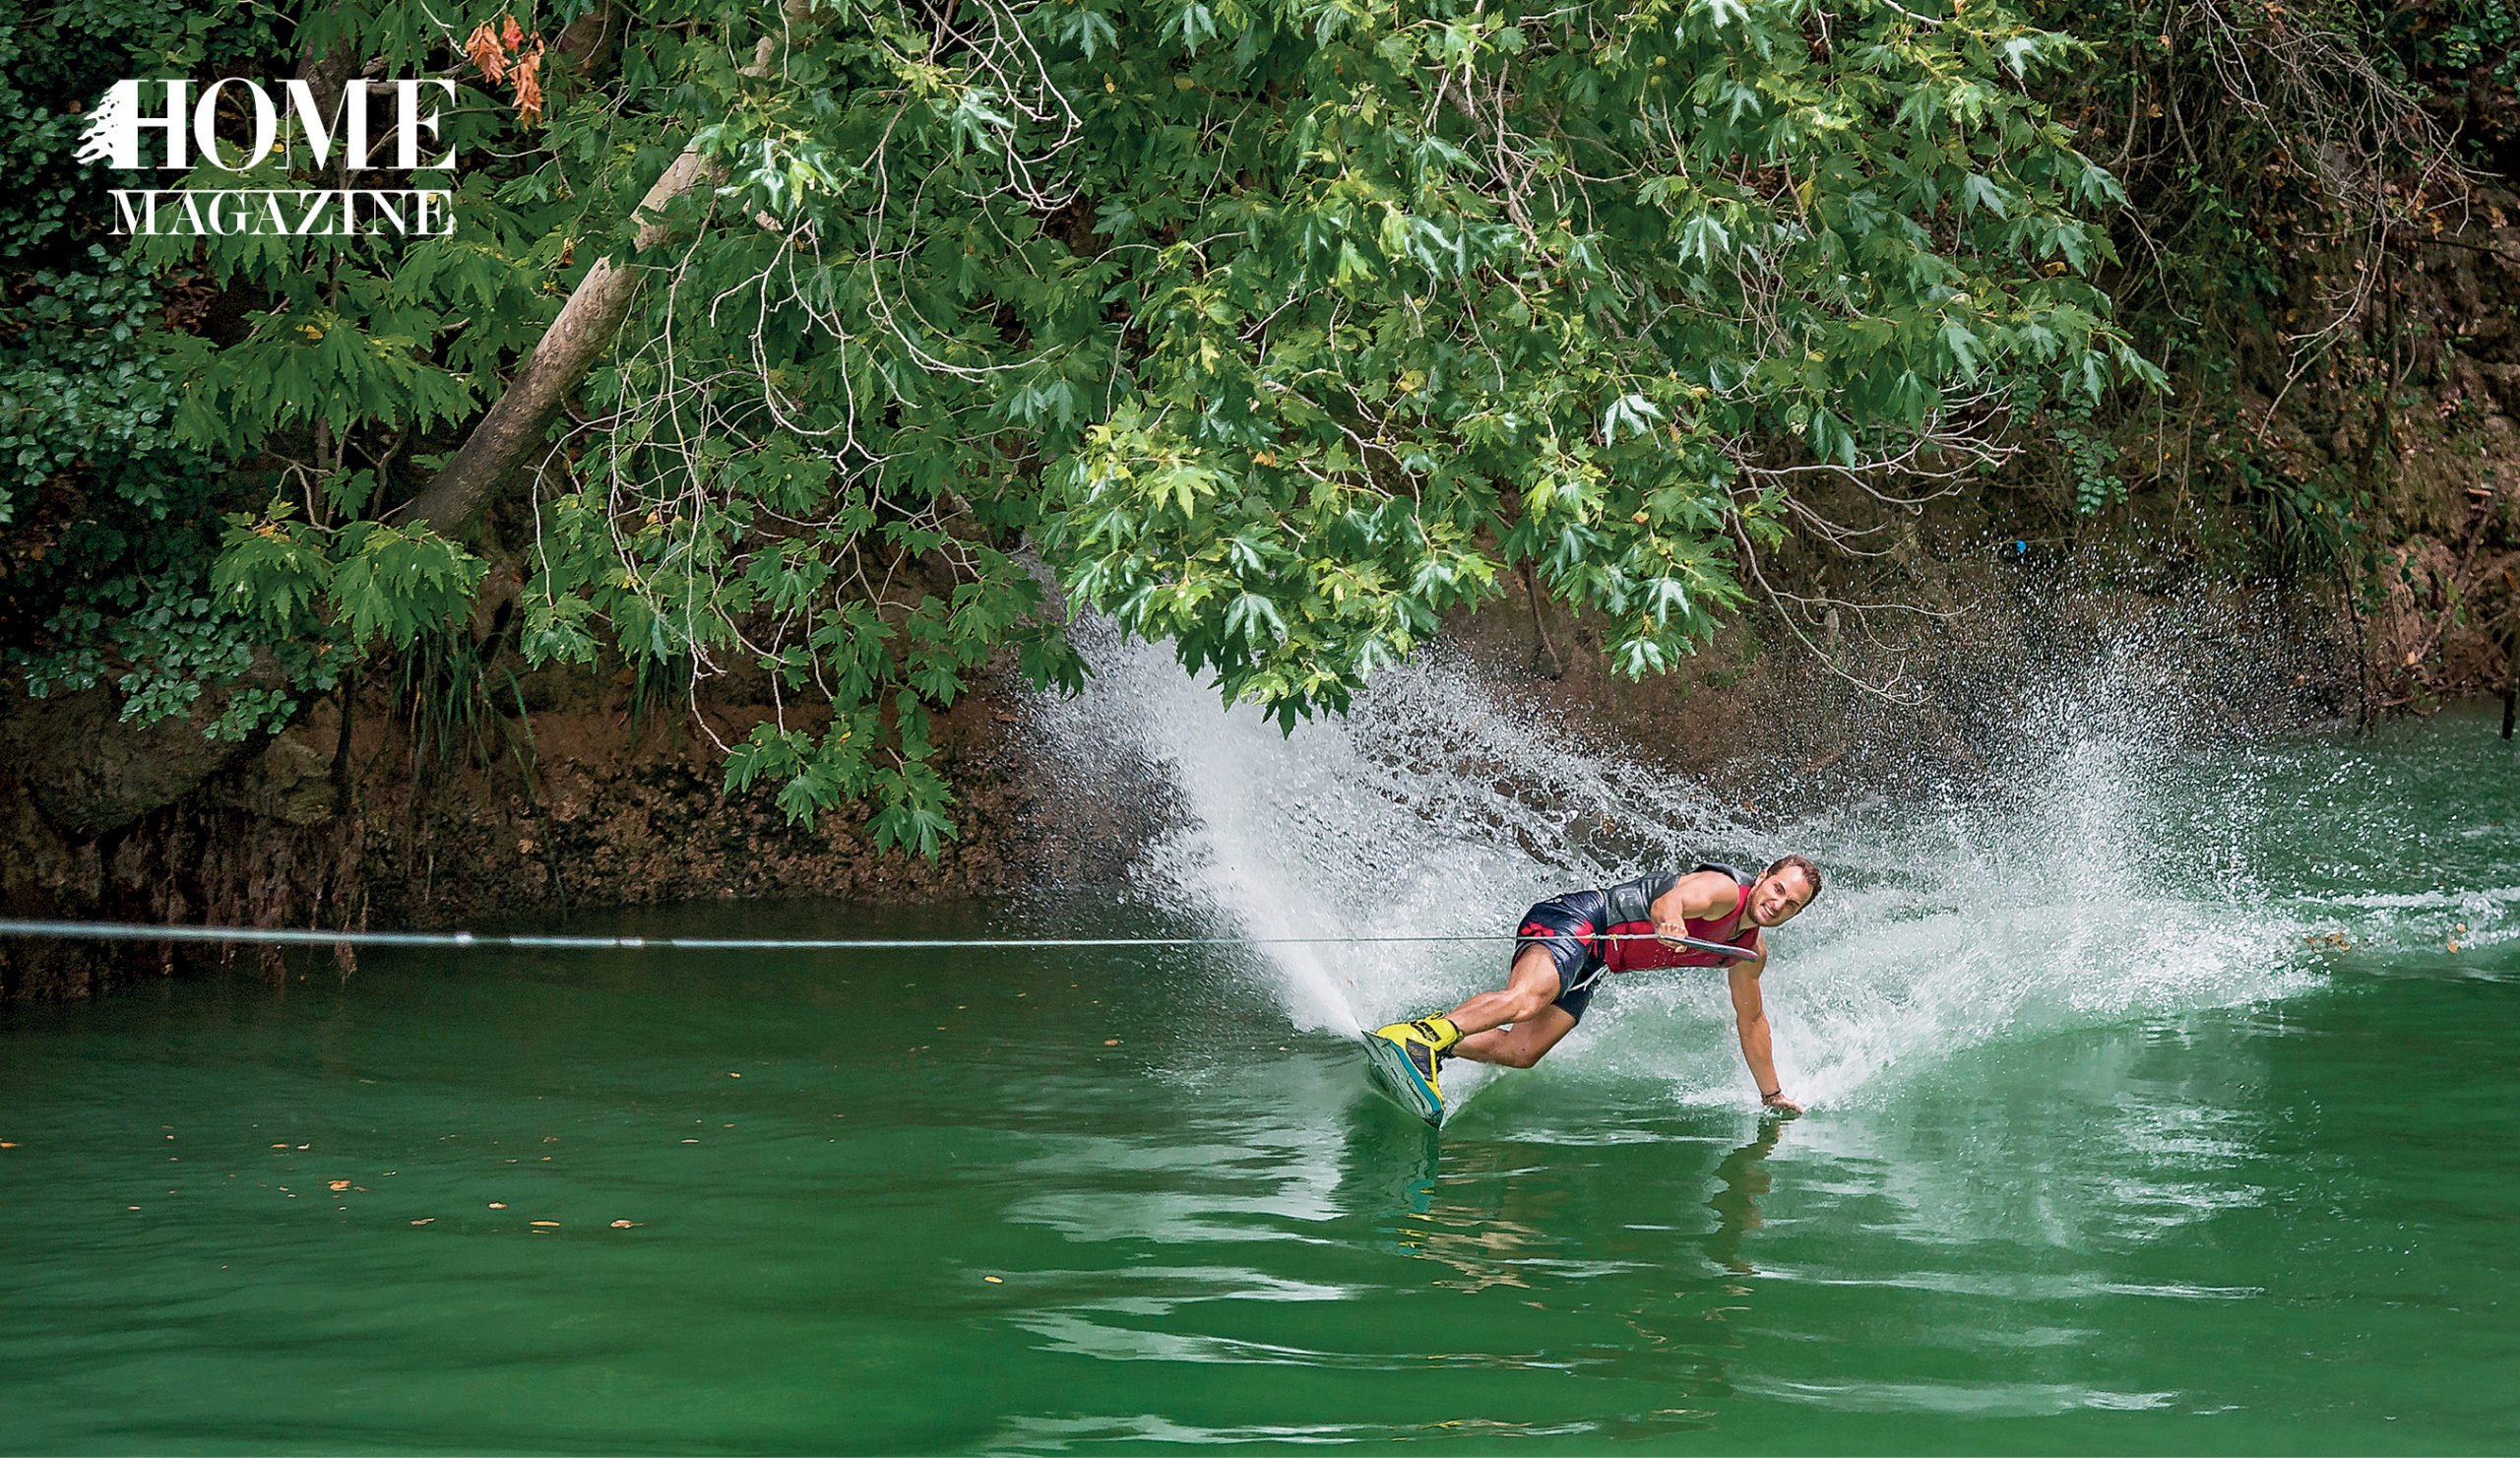 Man water surfing amidst green trees